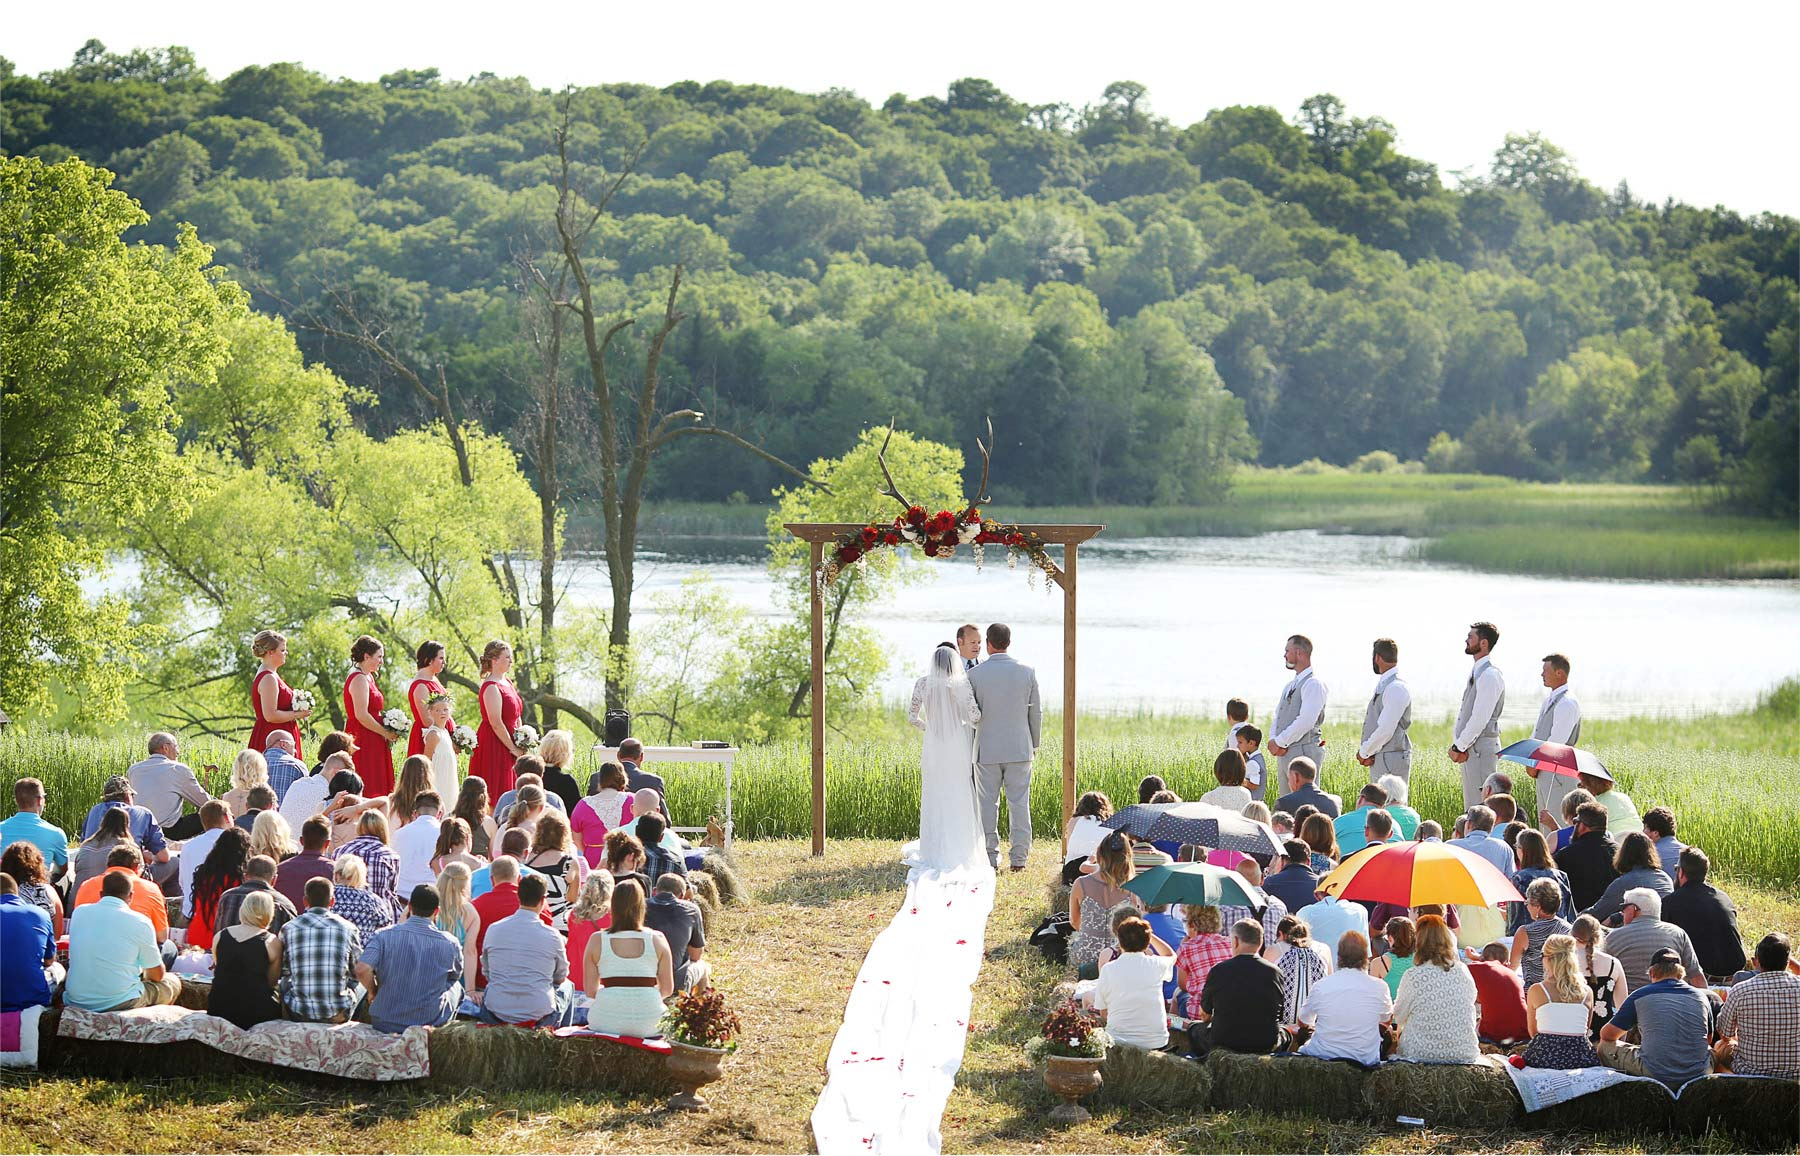 19-South-Haven-Minnesota-Wedding-Photographer-by-Andrew-Vick-Photography-Summer-Tomala-Farm-Ceremony-Bride-Groom-Bridal-Party-Renee-and-Bobb.jpg